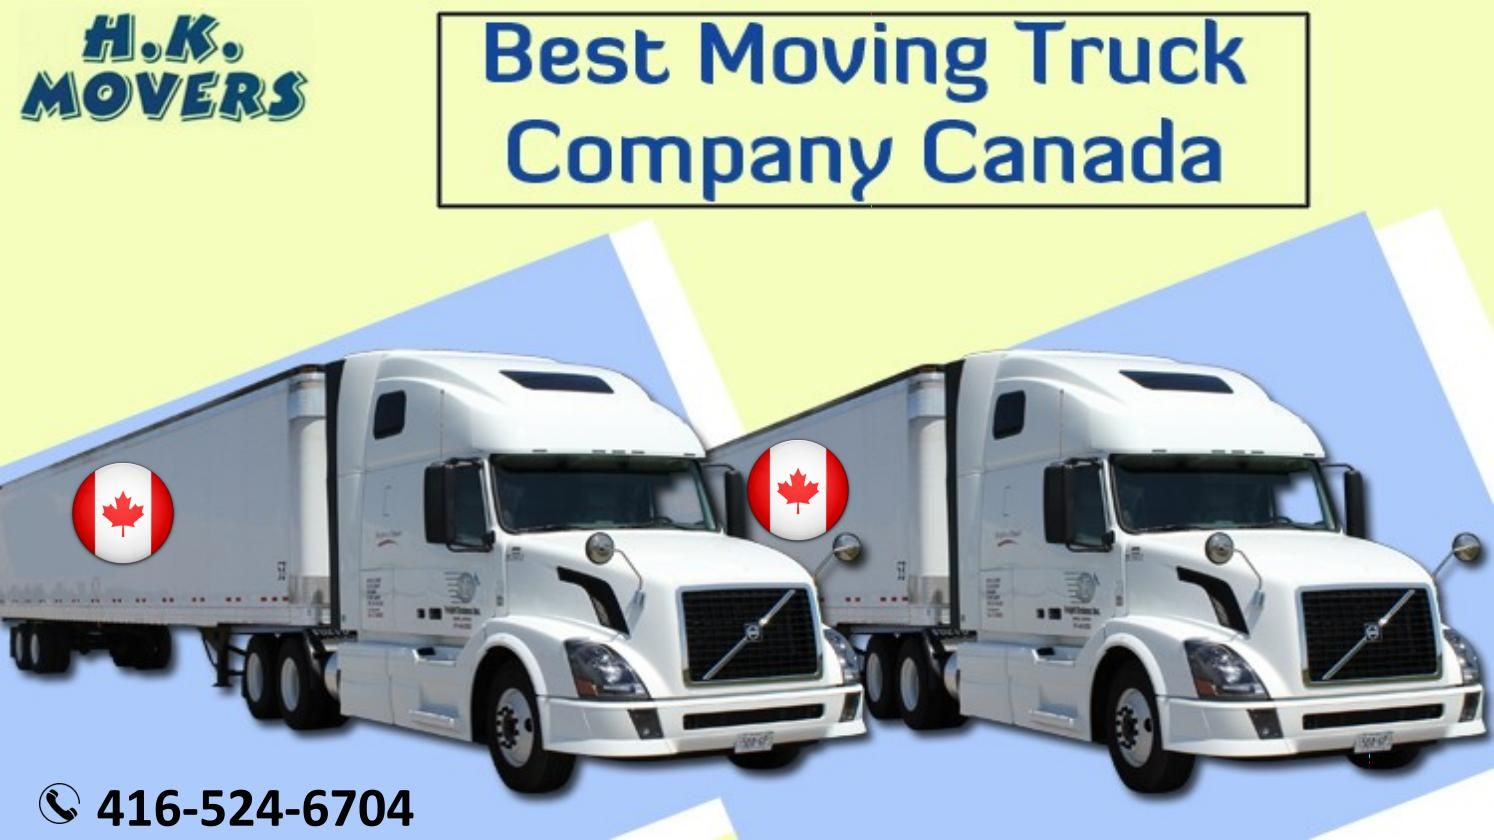 Best Moving Truck Company In Canada With Images Moving Truck